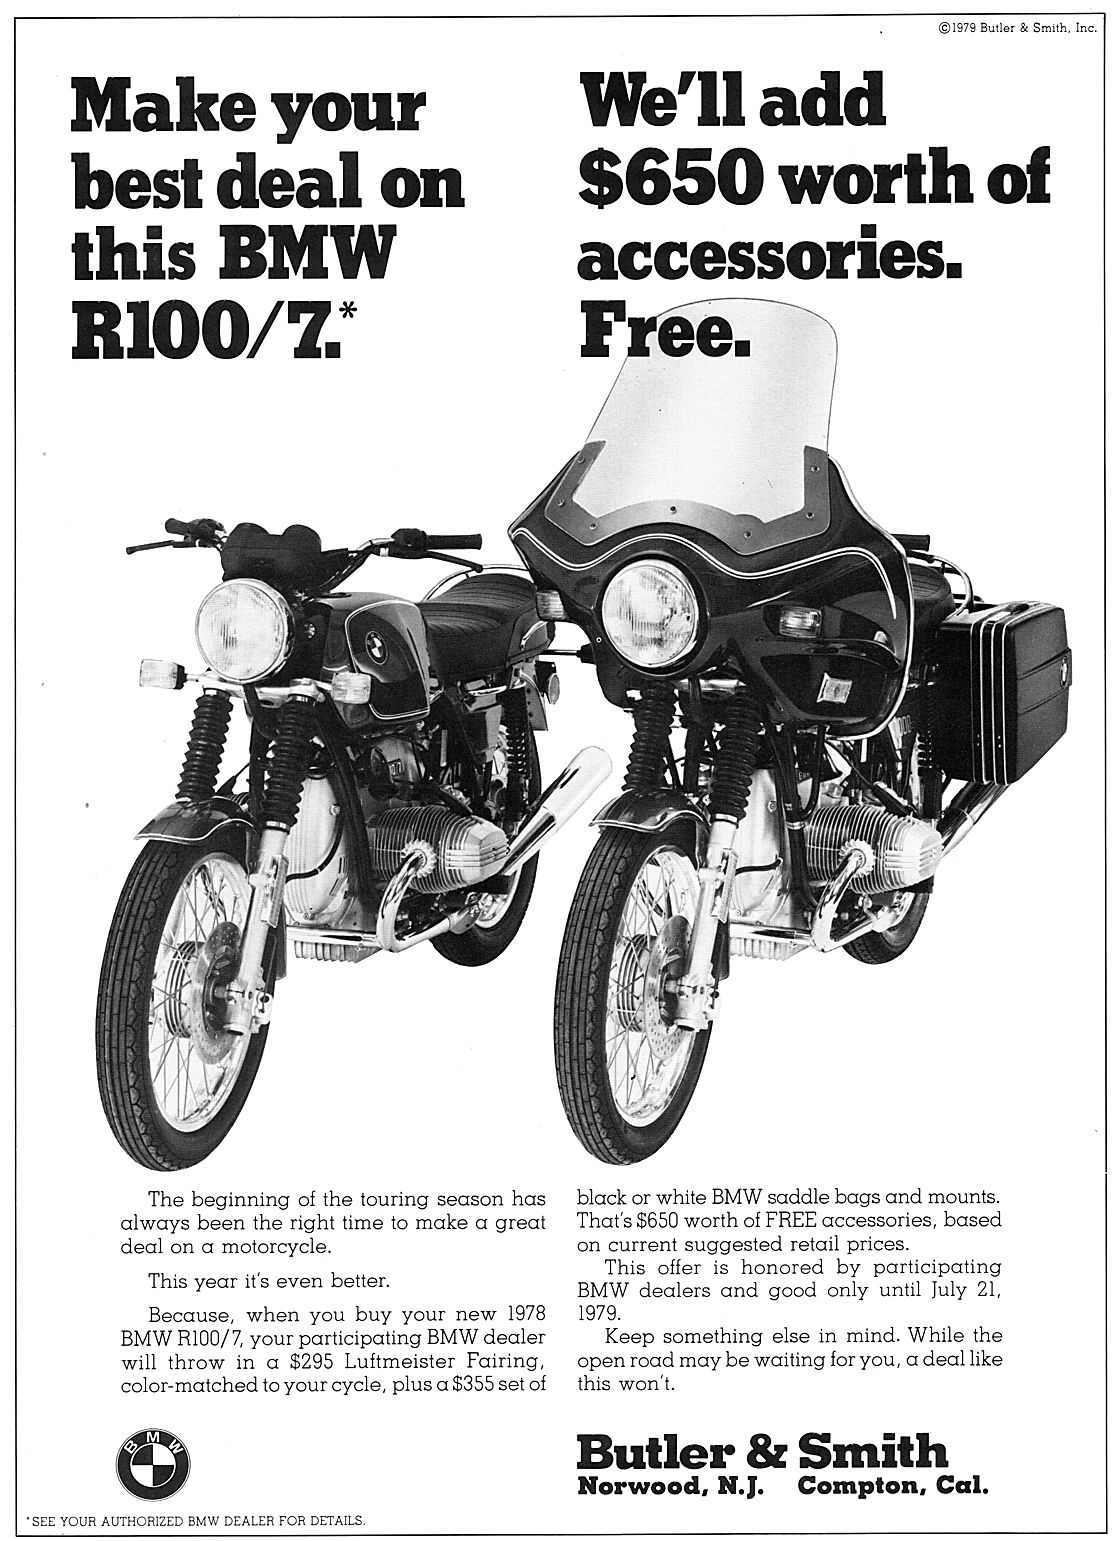 Late '70s BMW Motorcycle Ephemera